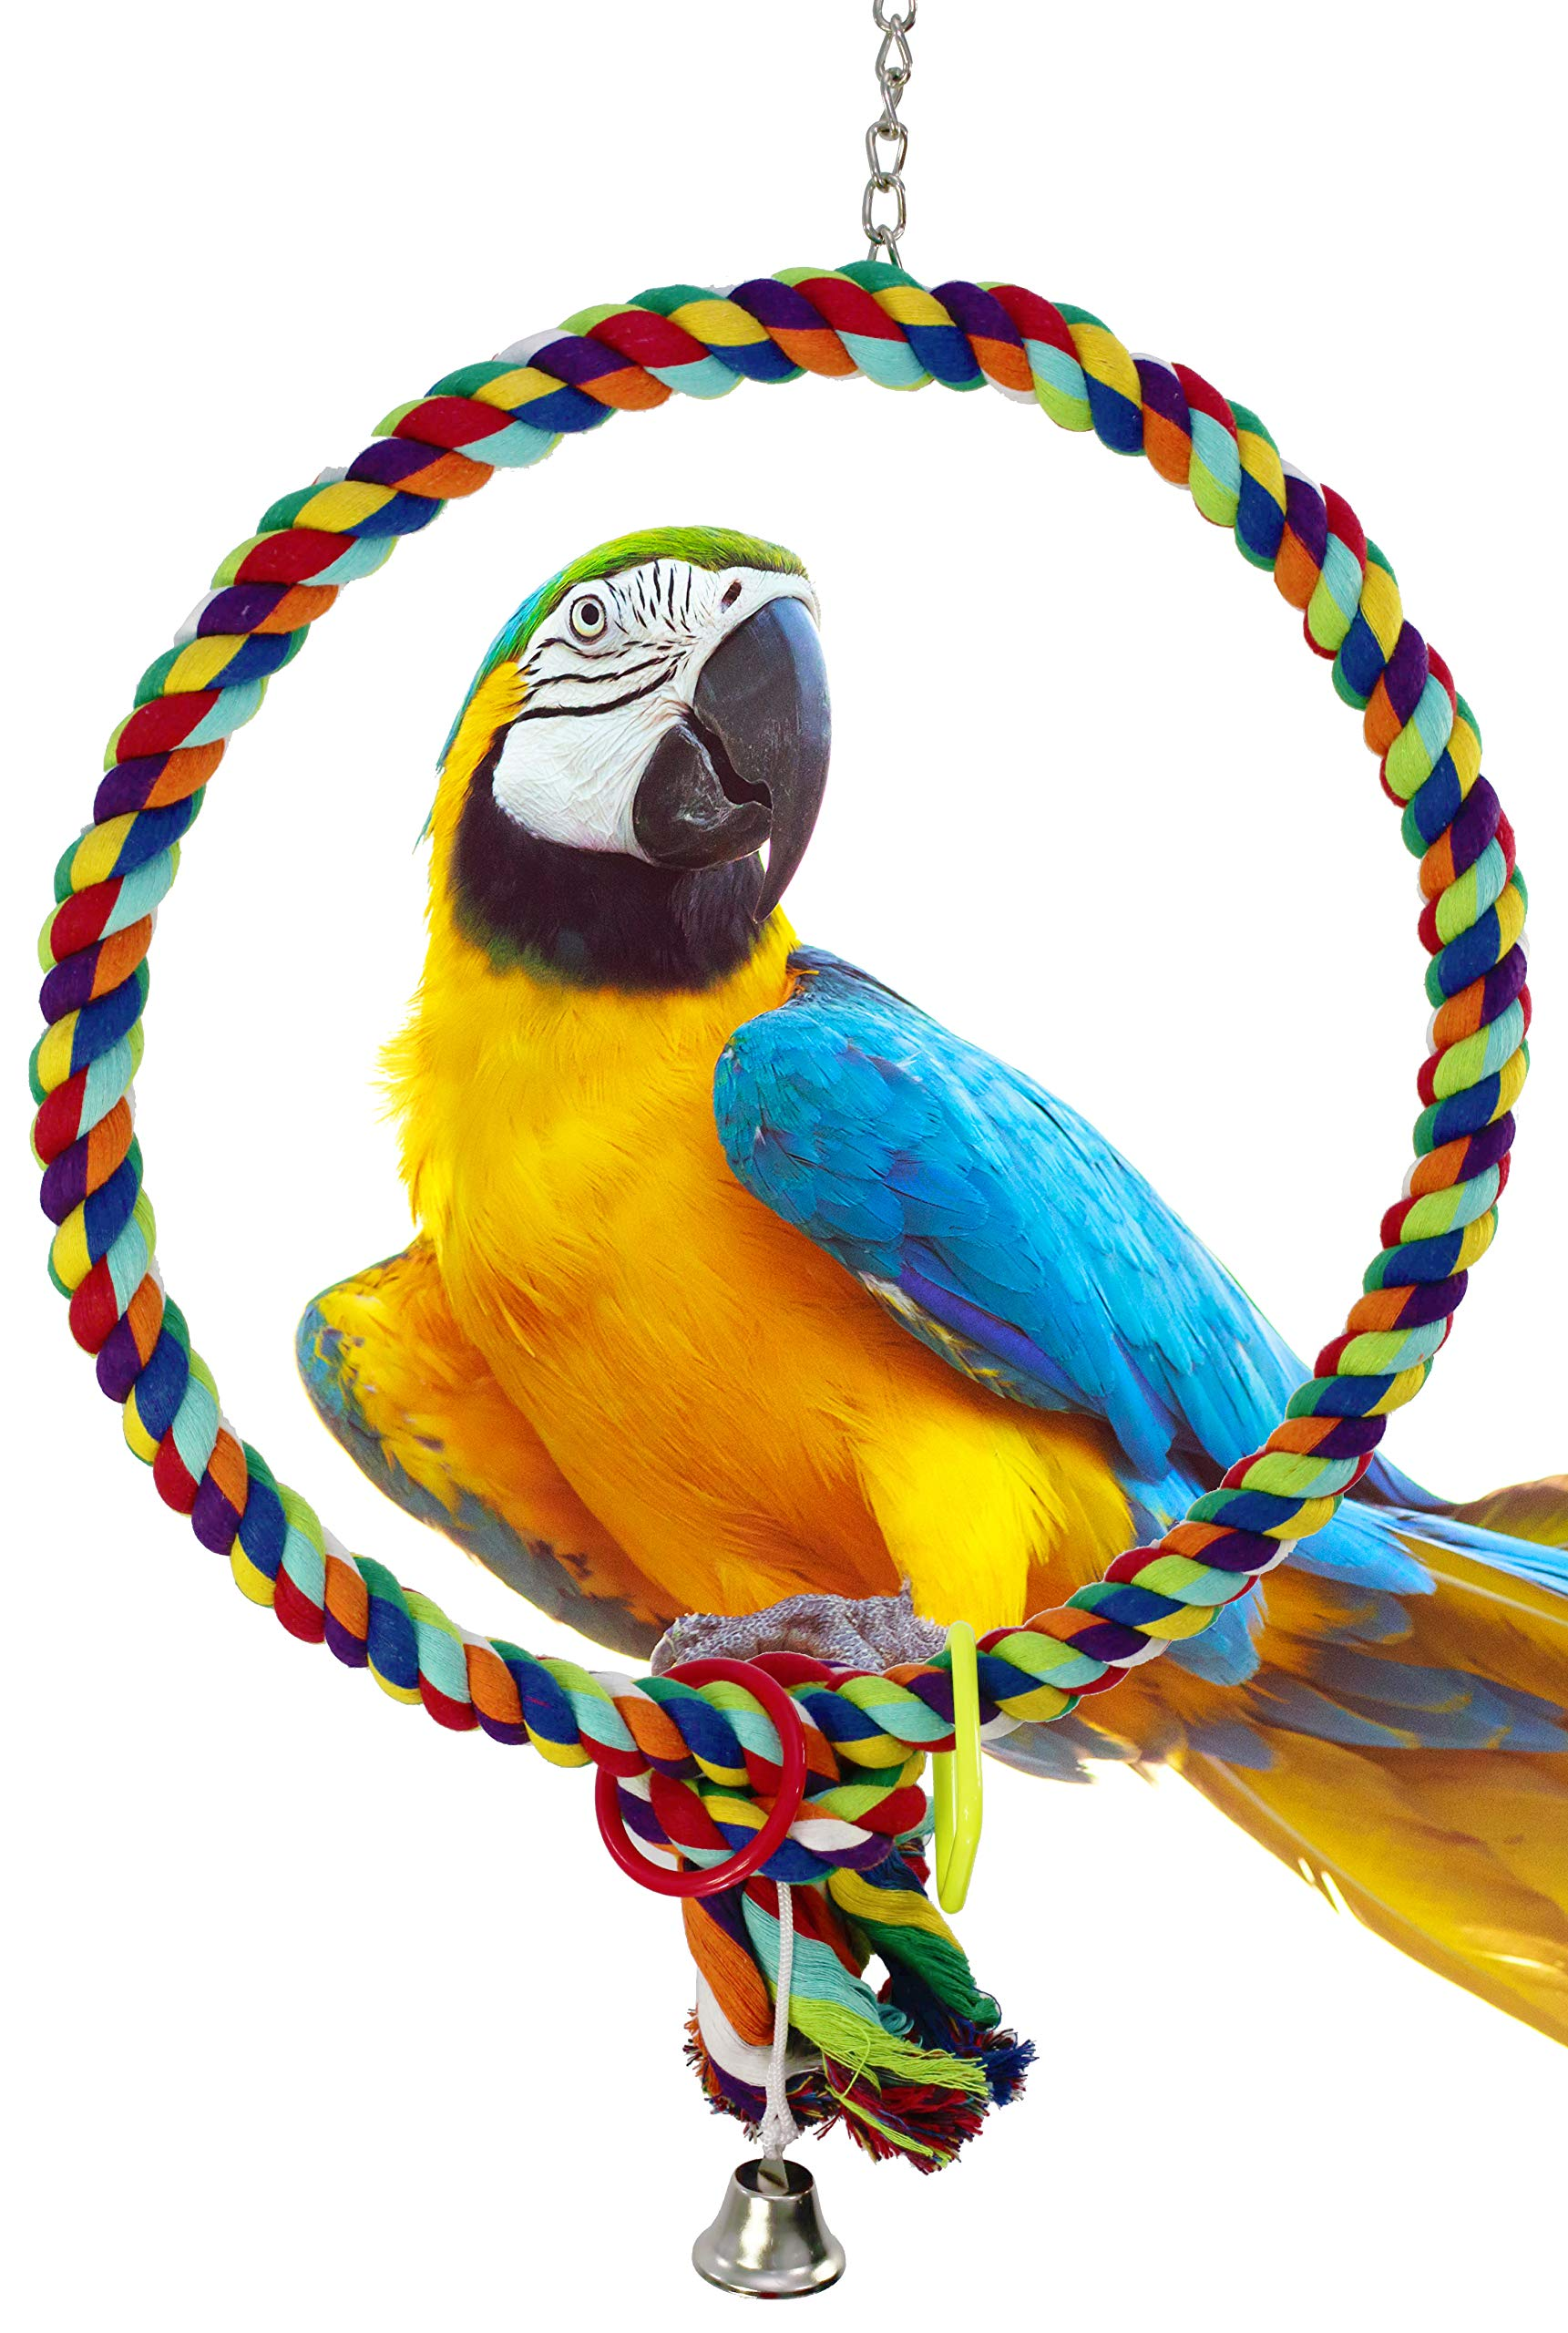 Bonka Bird Toys 1046 Huge 17 INCH Rope Ring Bird Toy Parrot cage Toys Cages Cockatoo Macaw by Bonka Bird Toys